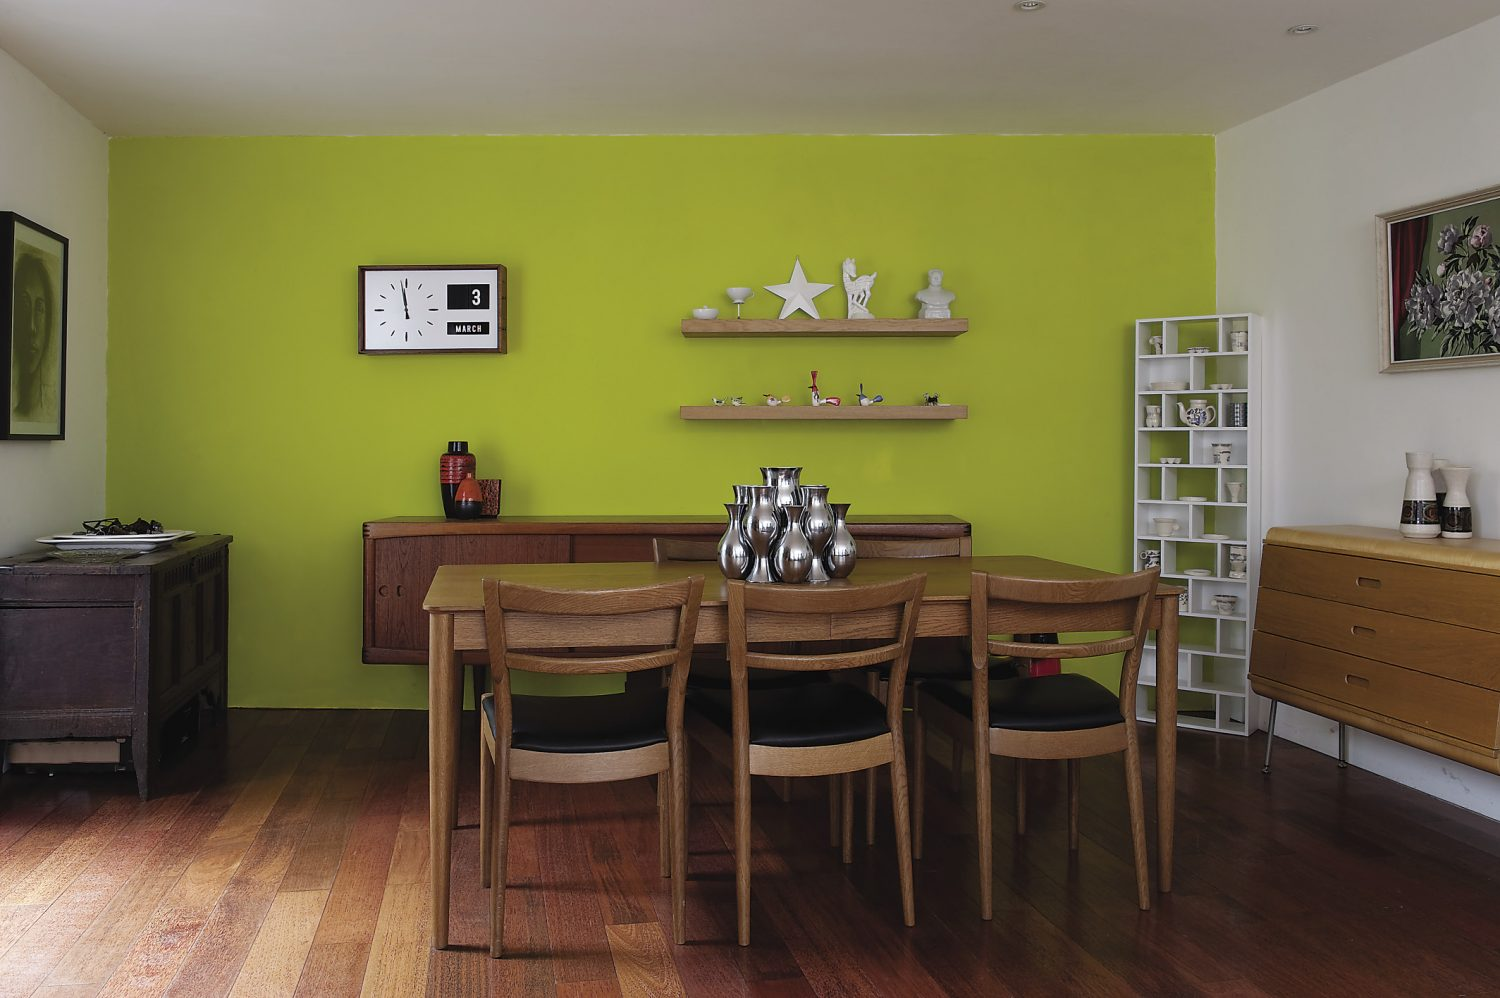 Displays in the L-shaped dining and sitting room are evidence of the couple's love of 1950s and 60s design